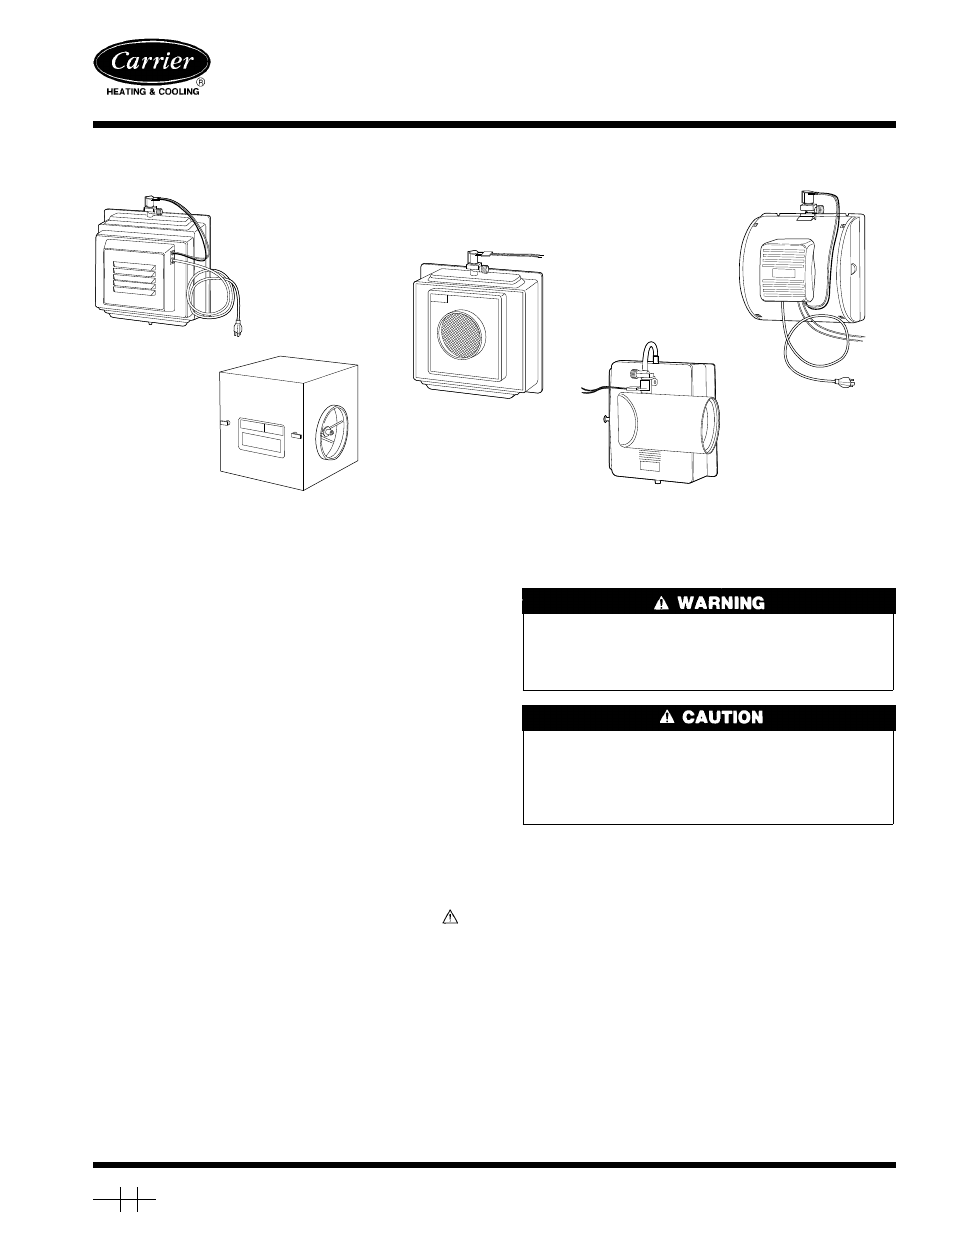 Carrier HUMCCLFP1025-A User Manual | 12 pages